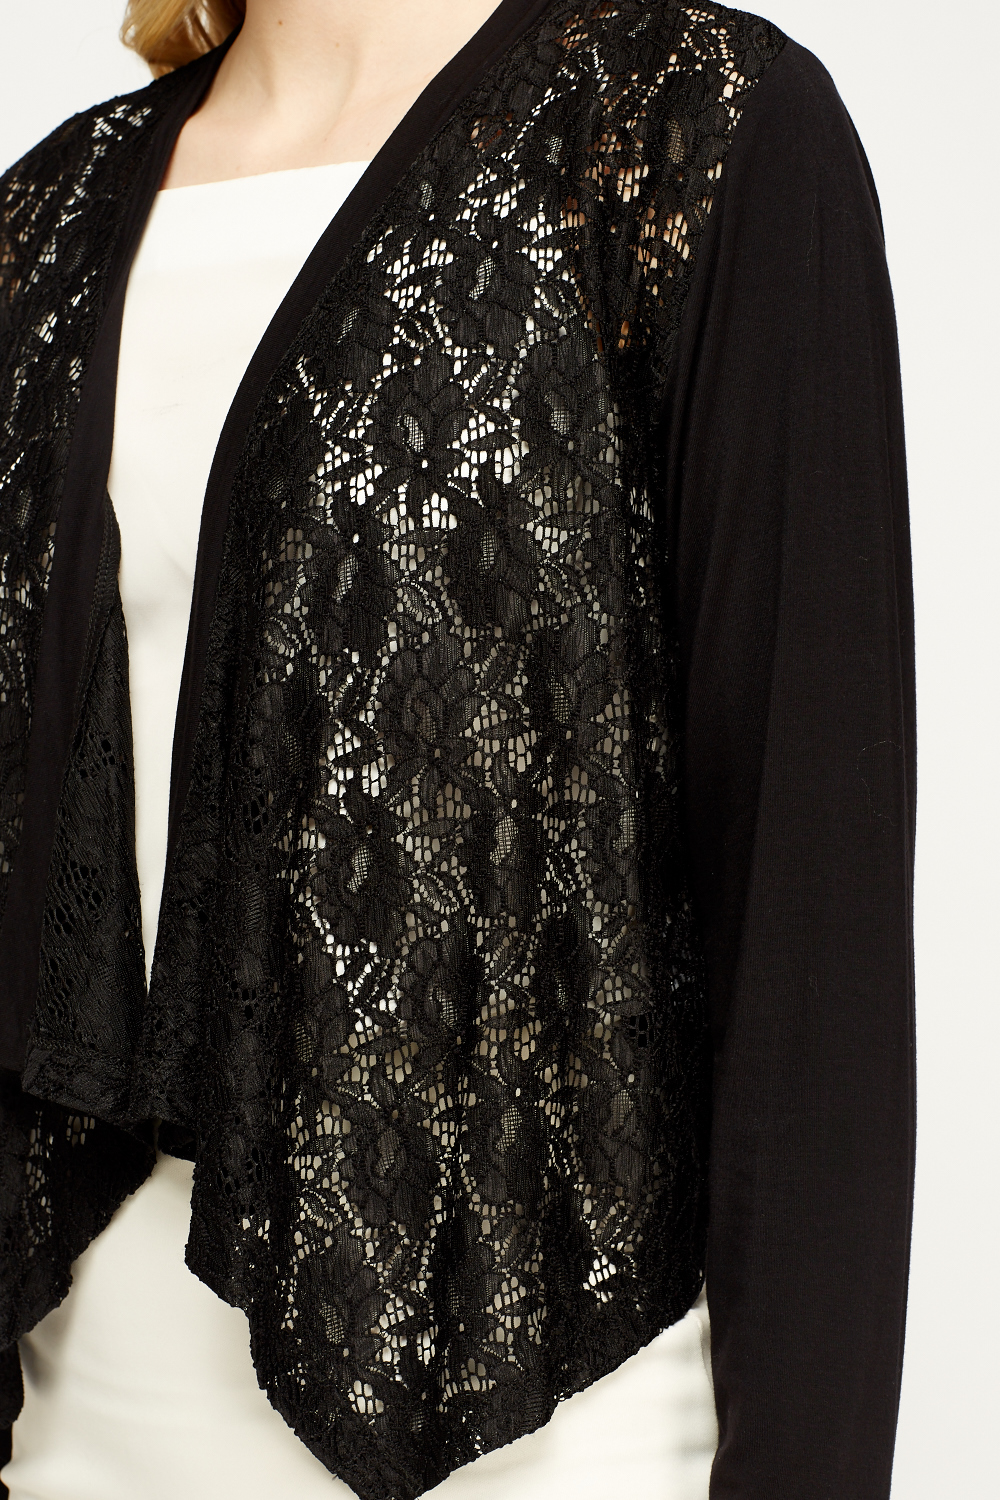 Lace Contrast Black Cropped Cardigan - Just £5